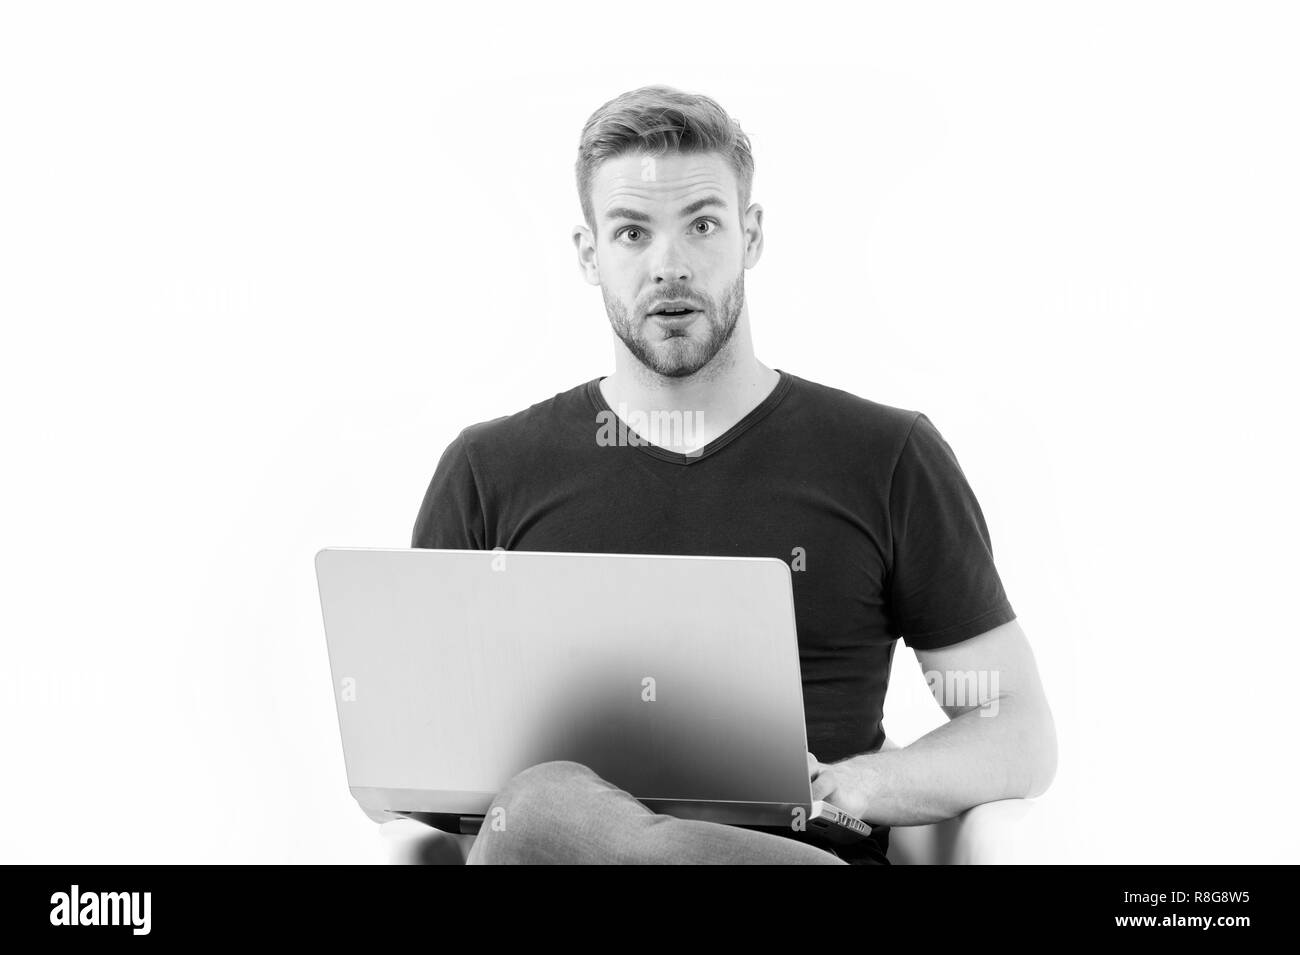 In search of inspiration. Man with laptop surprised inspired face found idea. Guy handsome unshaven in black shirt works computer isolated white. Man inspired fresh idea thought born on his mind. - Stock Image